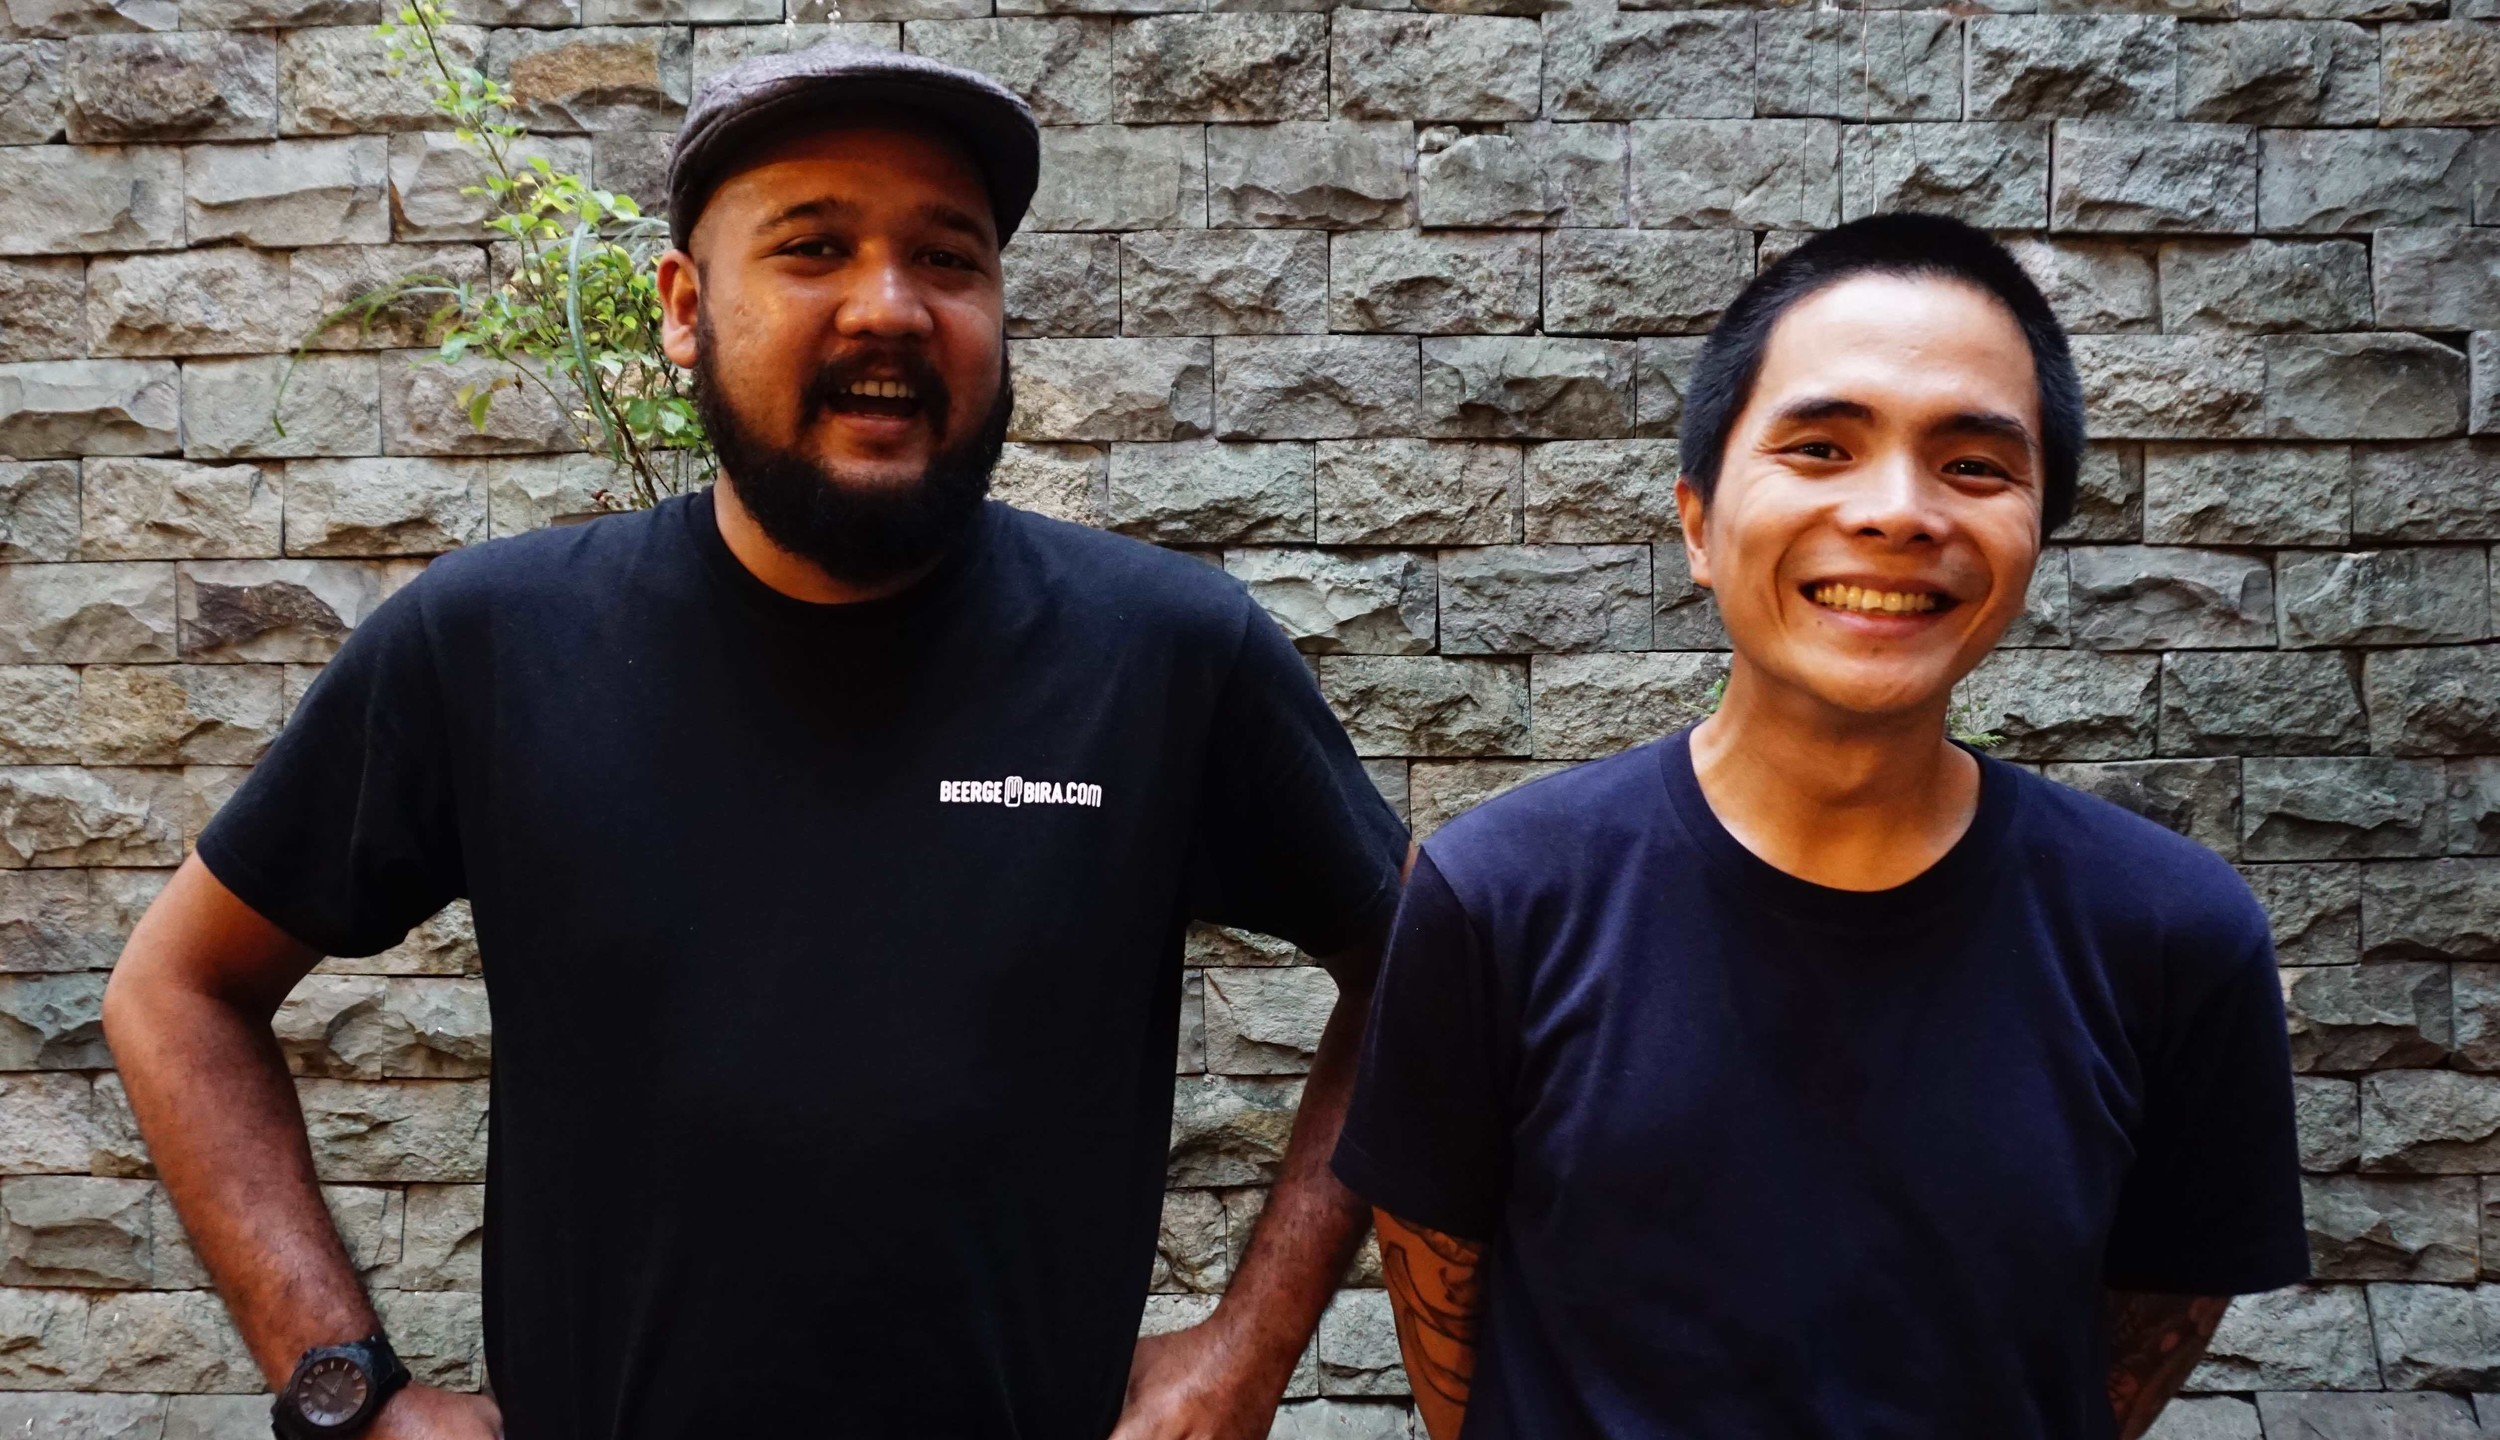 meet_the_muslim_and_vegetarian_cooks_behind_indonesias_best_pork_take_out_body_image_1479194297